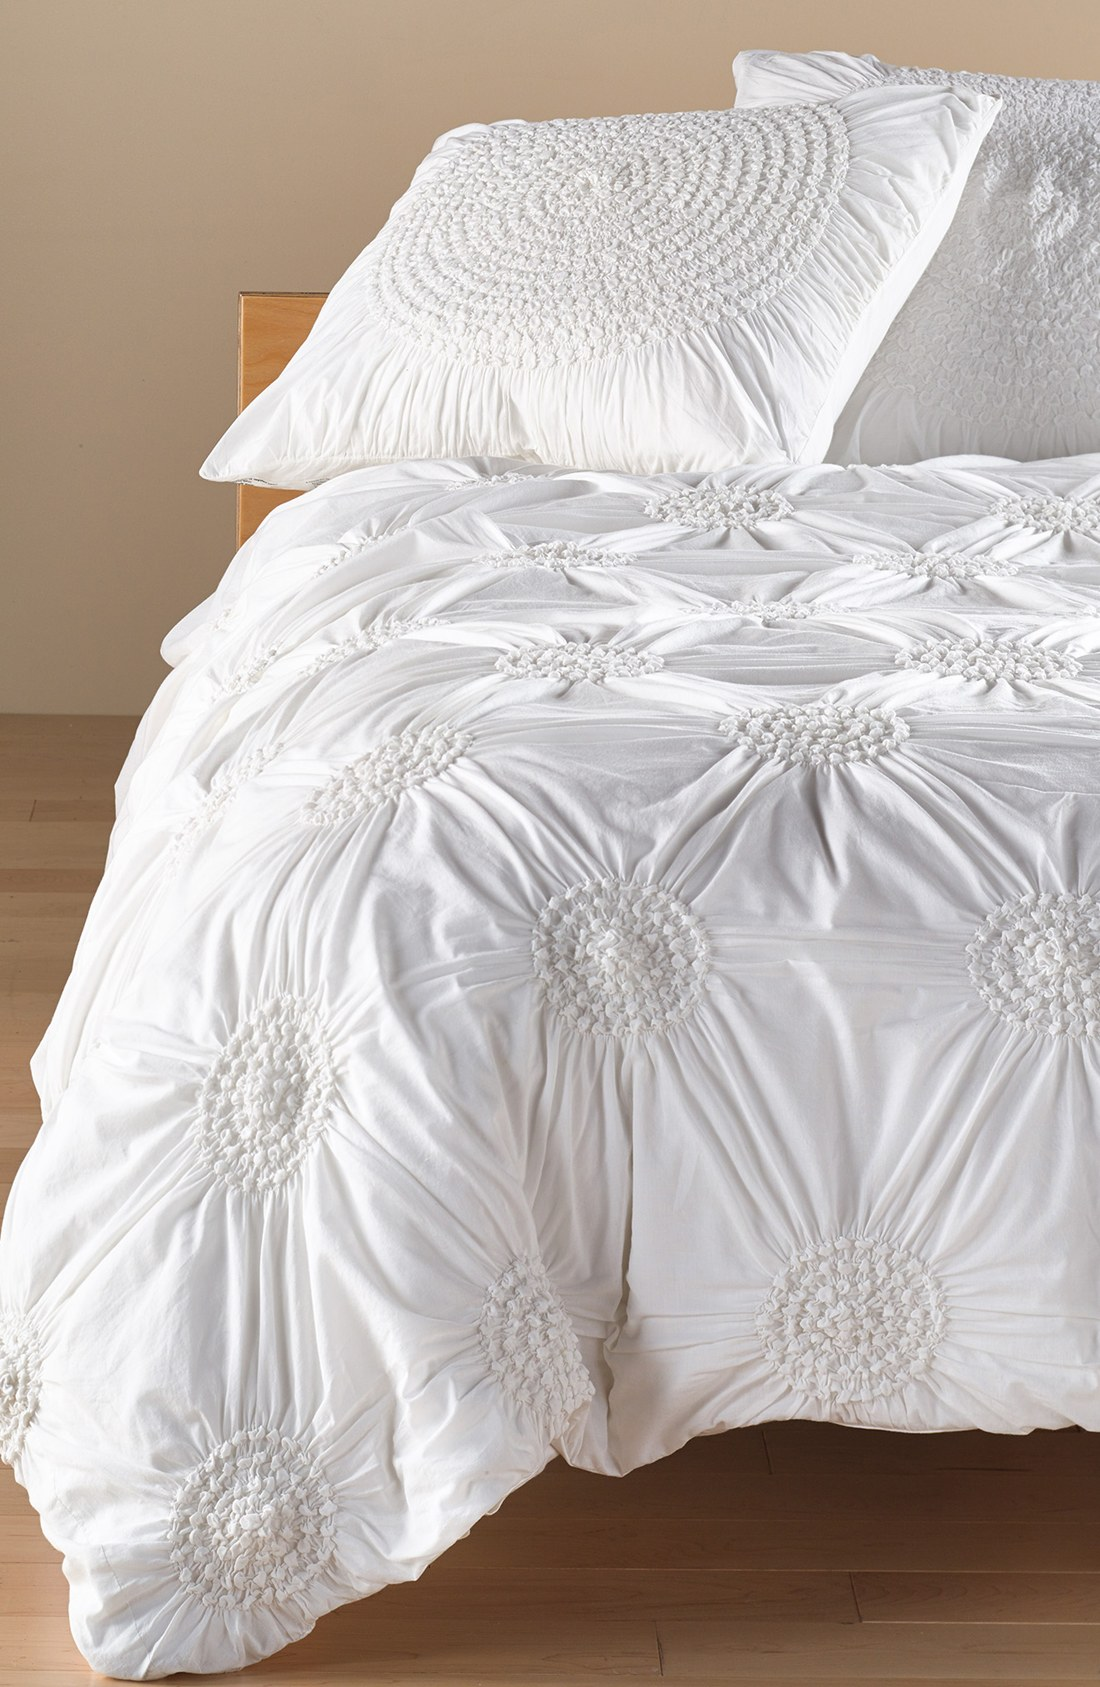 White Duvet Cover | White Tufted Duvet Cover | Duvet Covers Queen